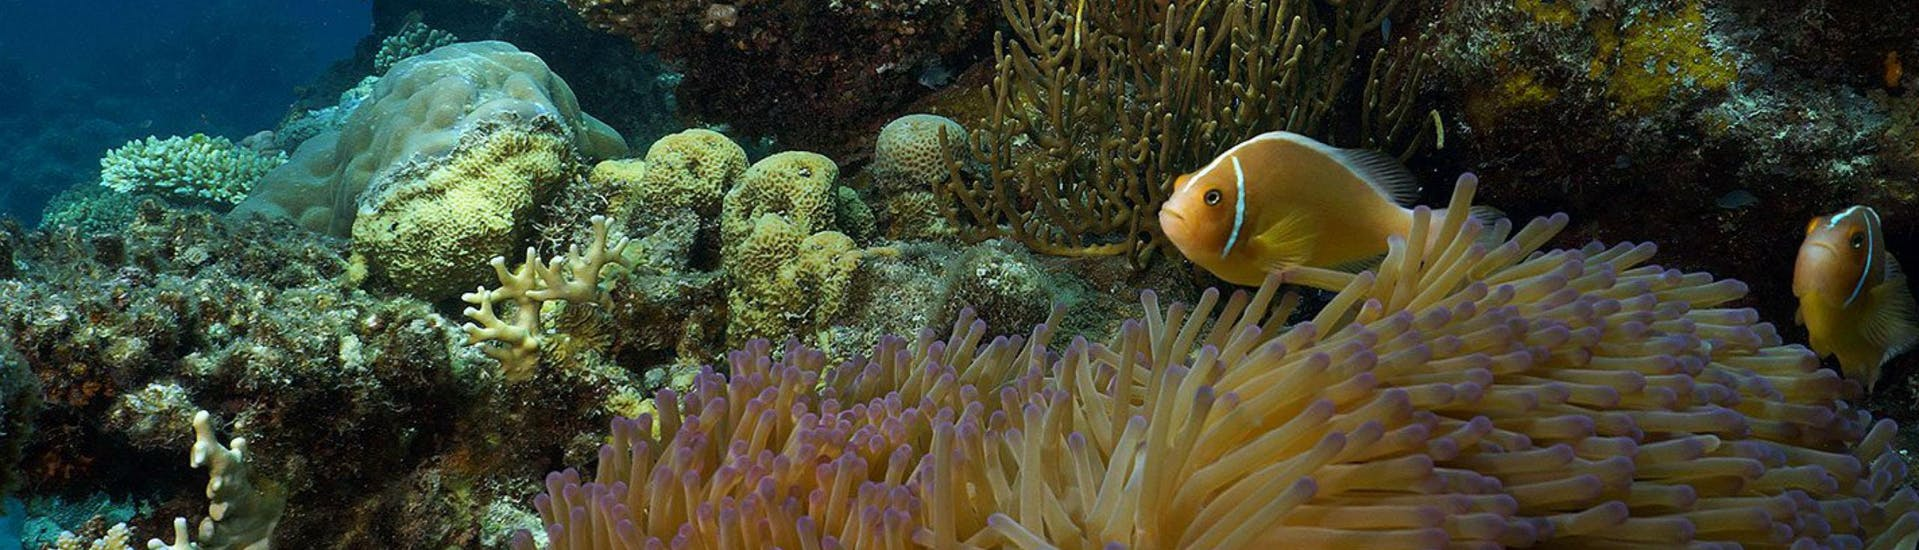 An image of colourful fish swimming around the coral reef that can be seen during the offer Introductory Scuba Diving at the Great Barrier Reef with Ocean Freedom.